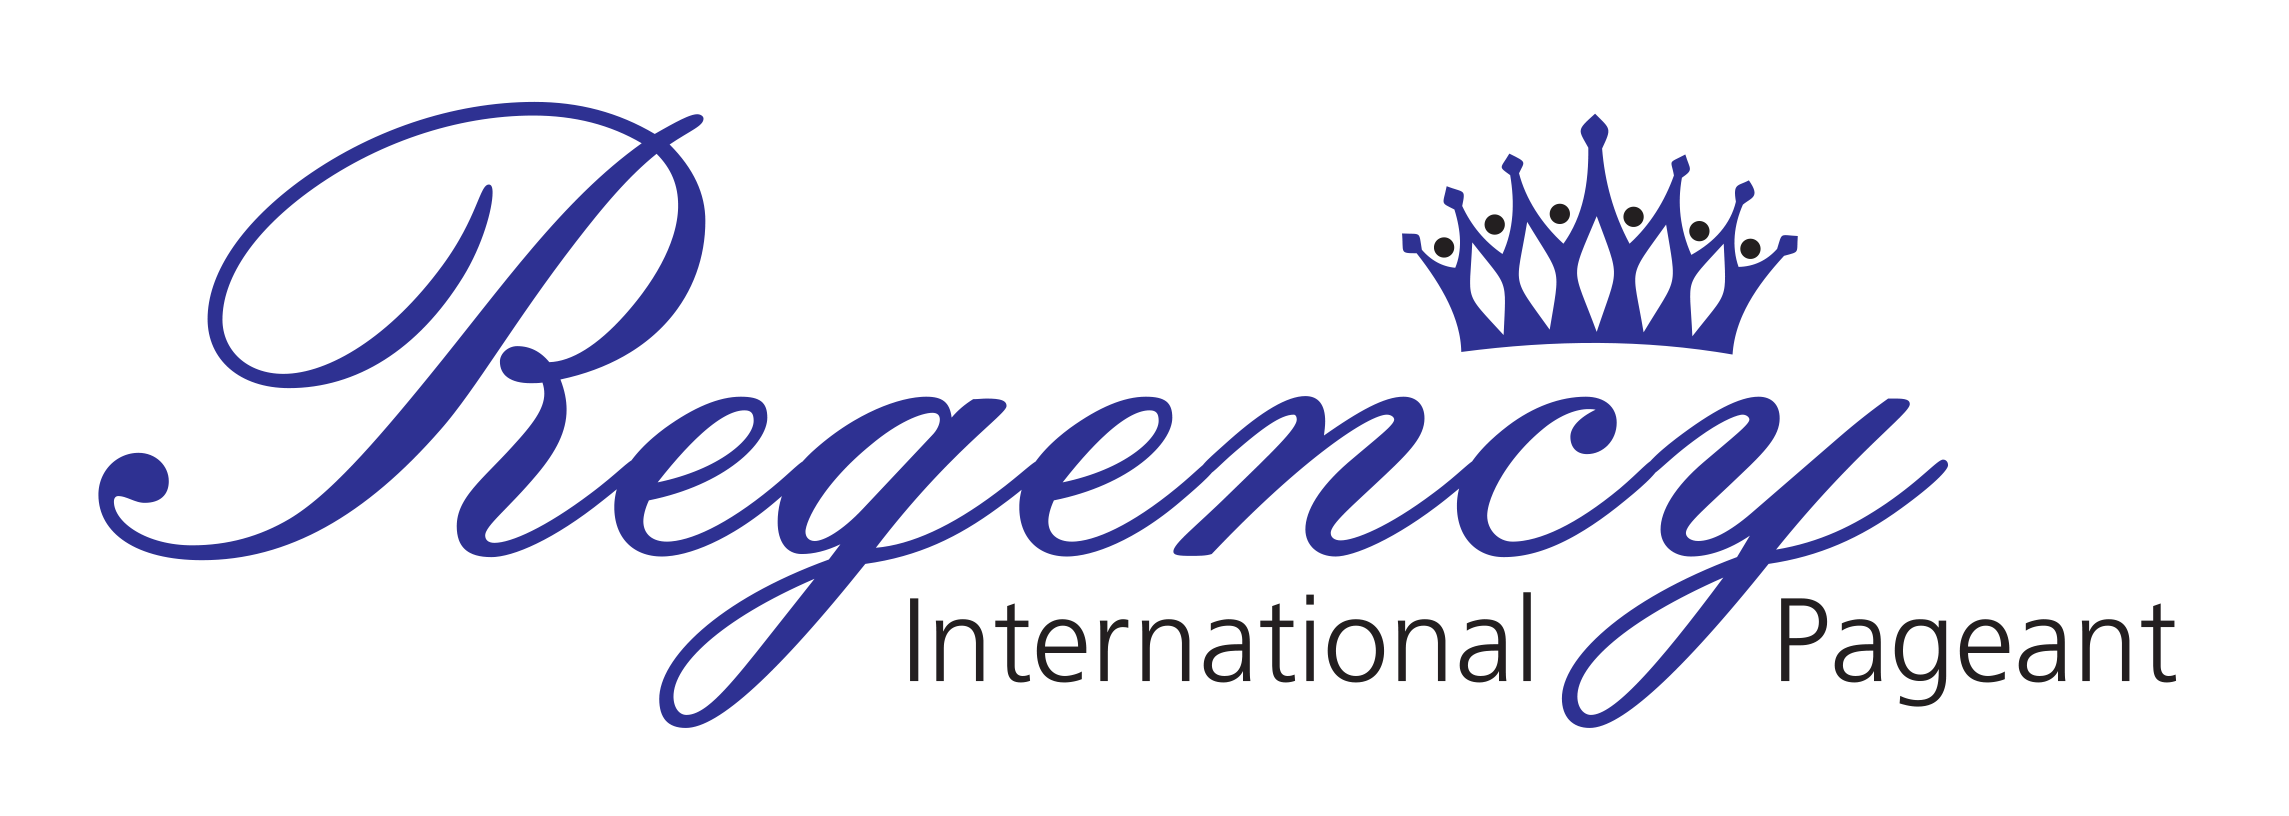 New York Regency International Beauty Pageant July 17th thru 20, 2019 in Las Vegas, NV.  The Host hotel will be the Golden Nugget